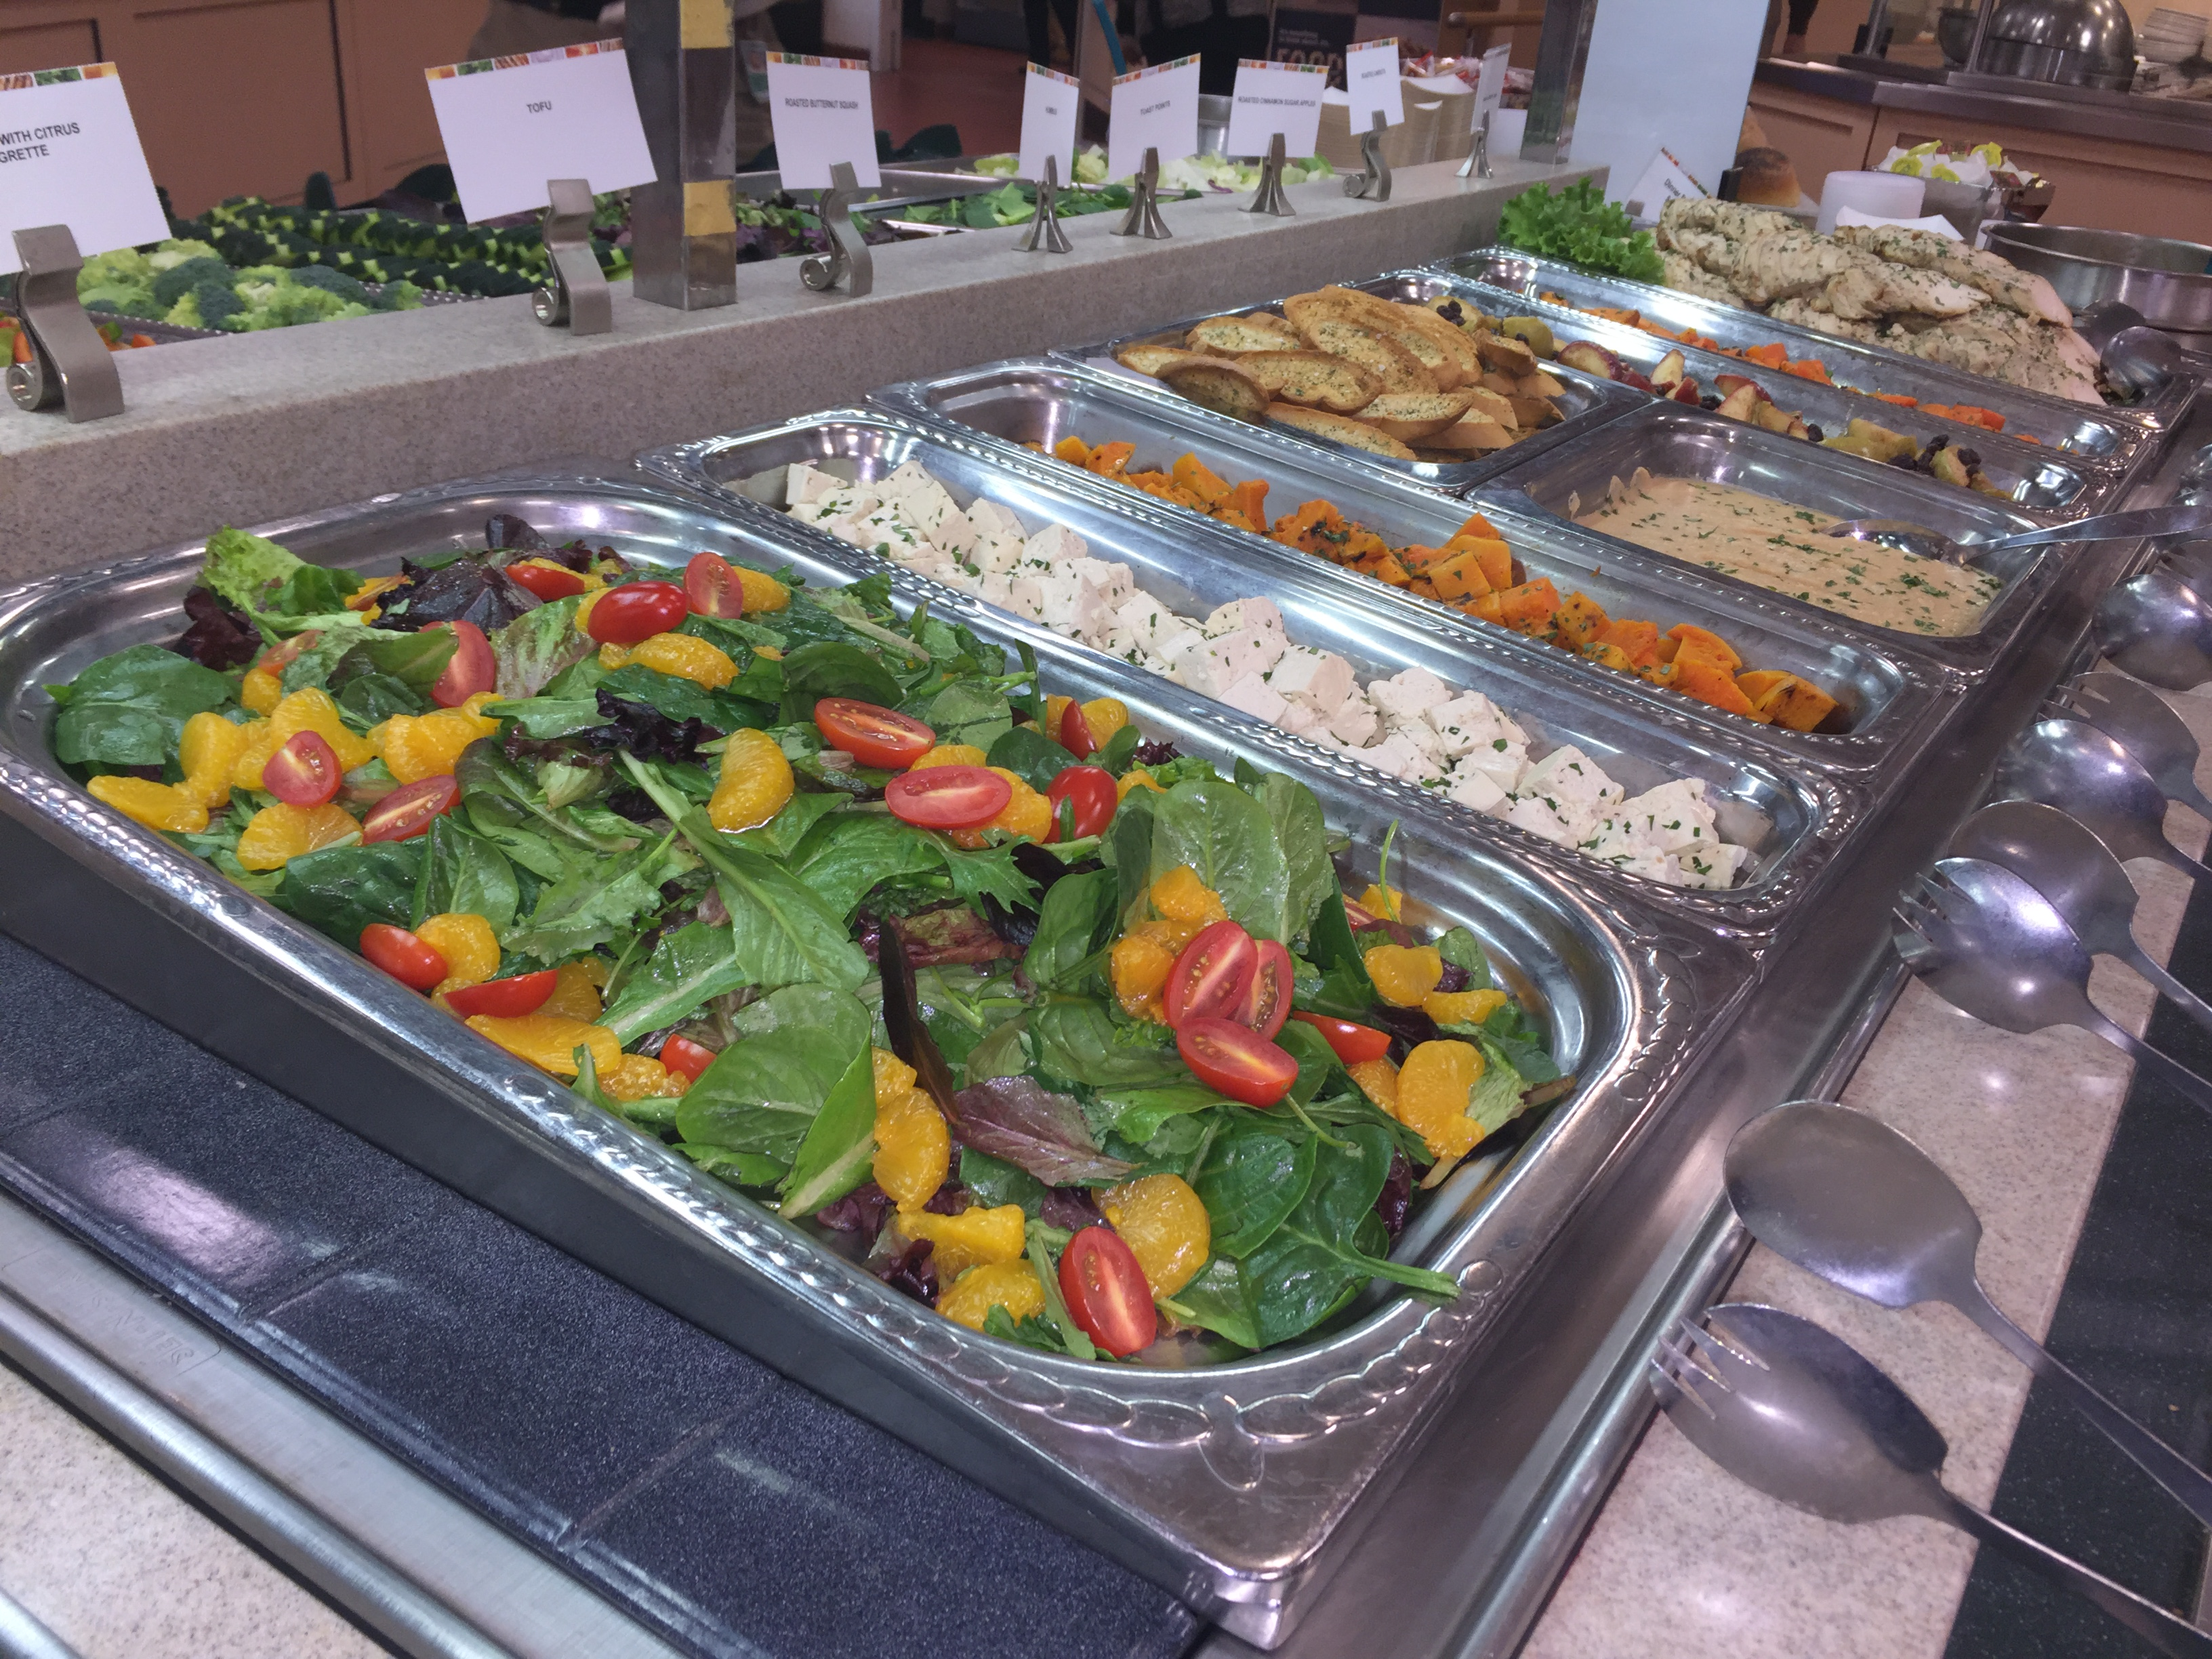 Cold Pans and Serving Pieces